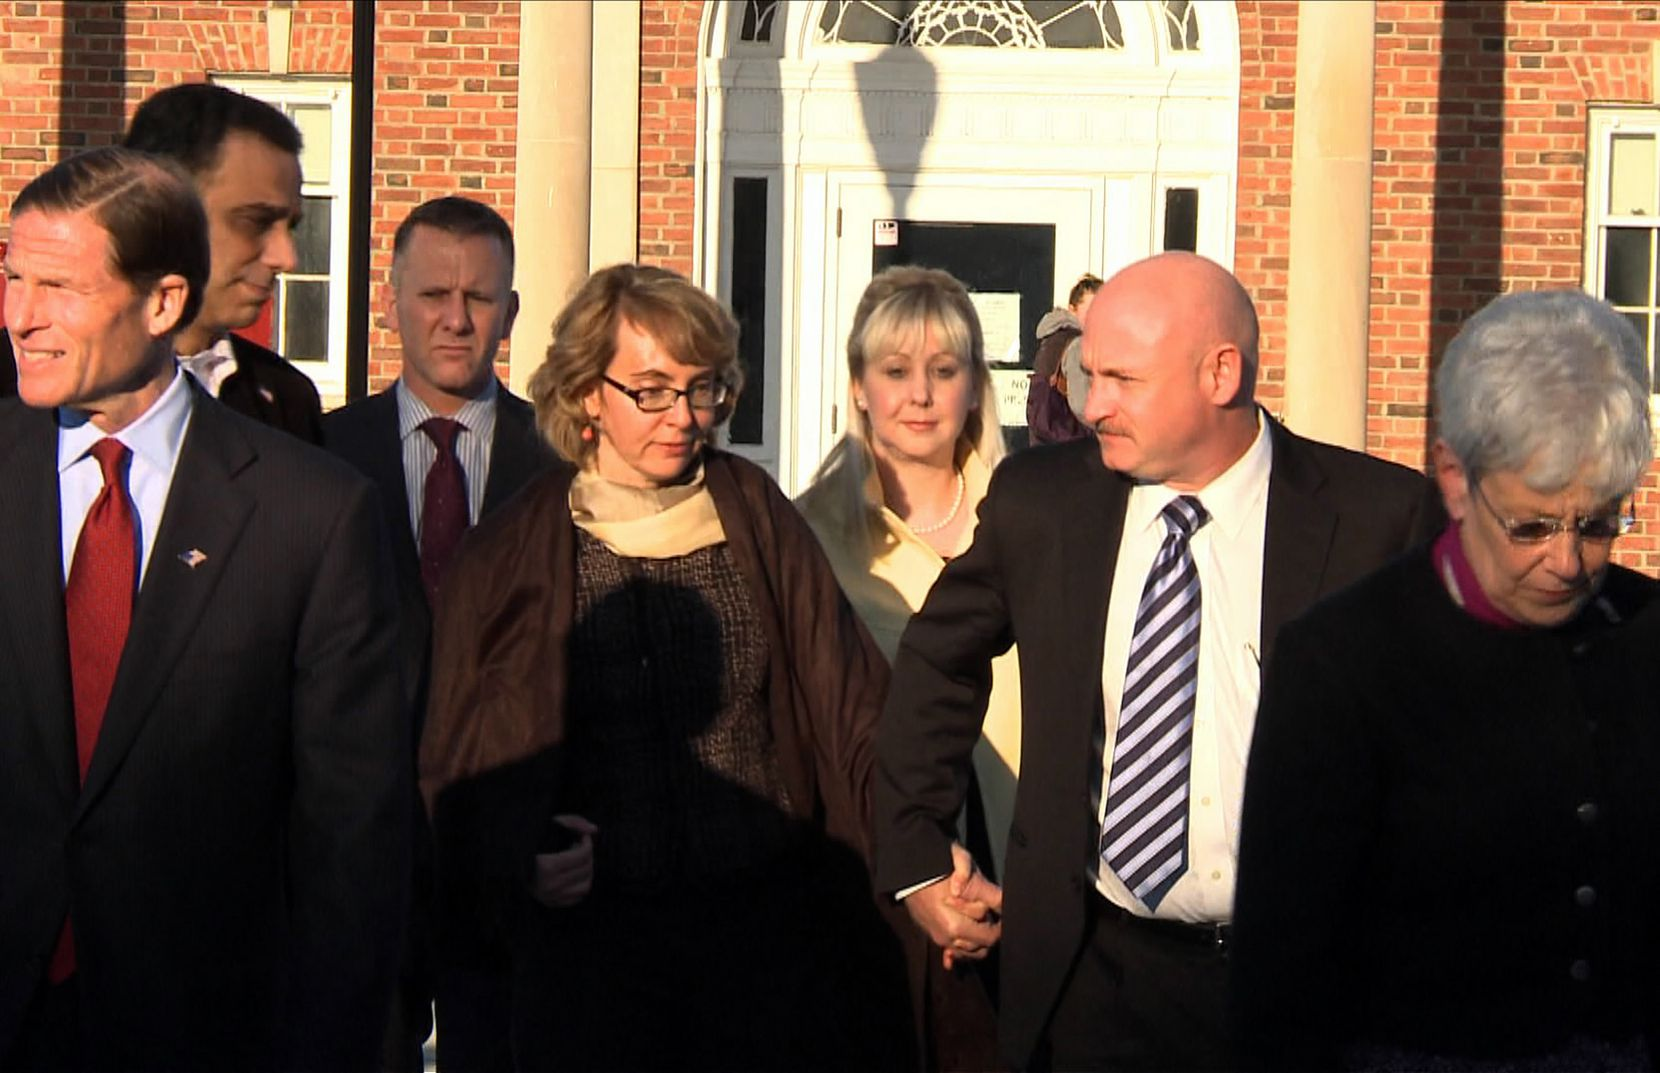 Former Arizona congresswoman Gabrielle Giffords and her husband, future Arizona Sen. Mark Kelly, leave the municipal center in Newtown, Conn., after meeting with families of victims in the Sandy Hook shootings.